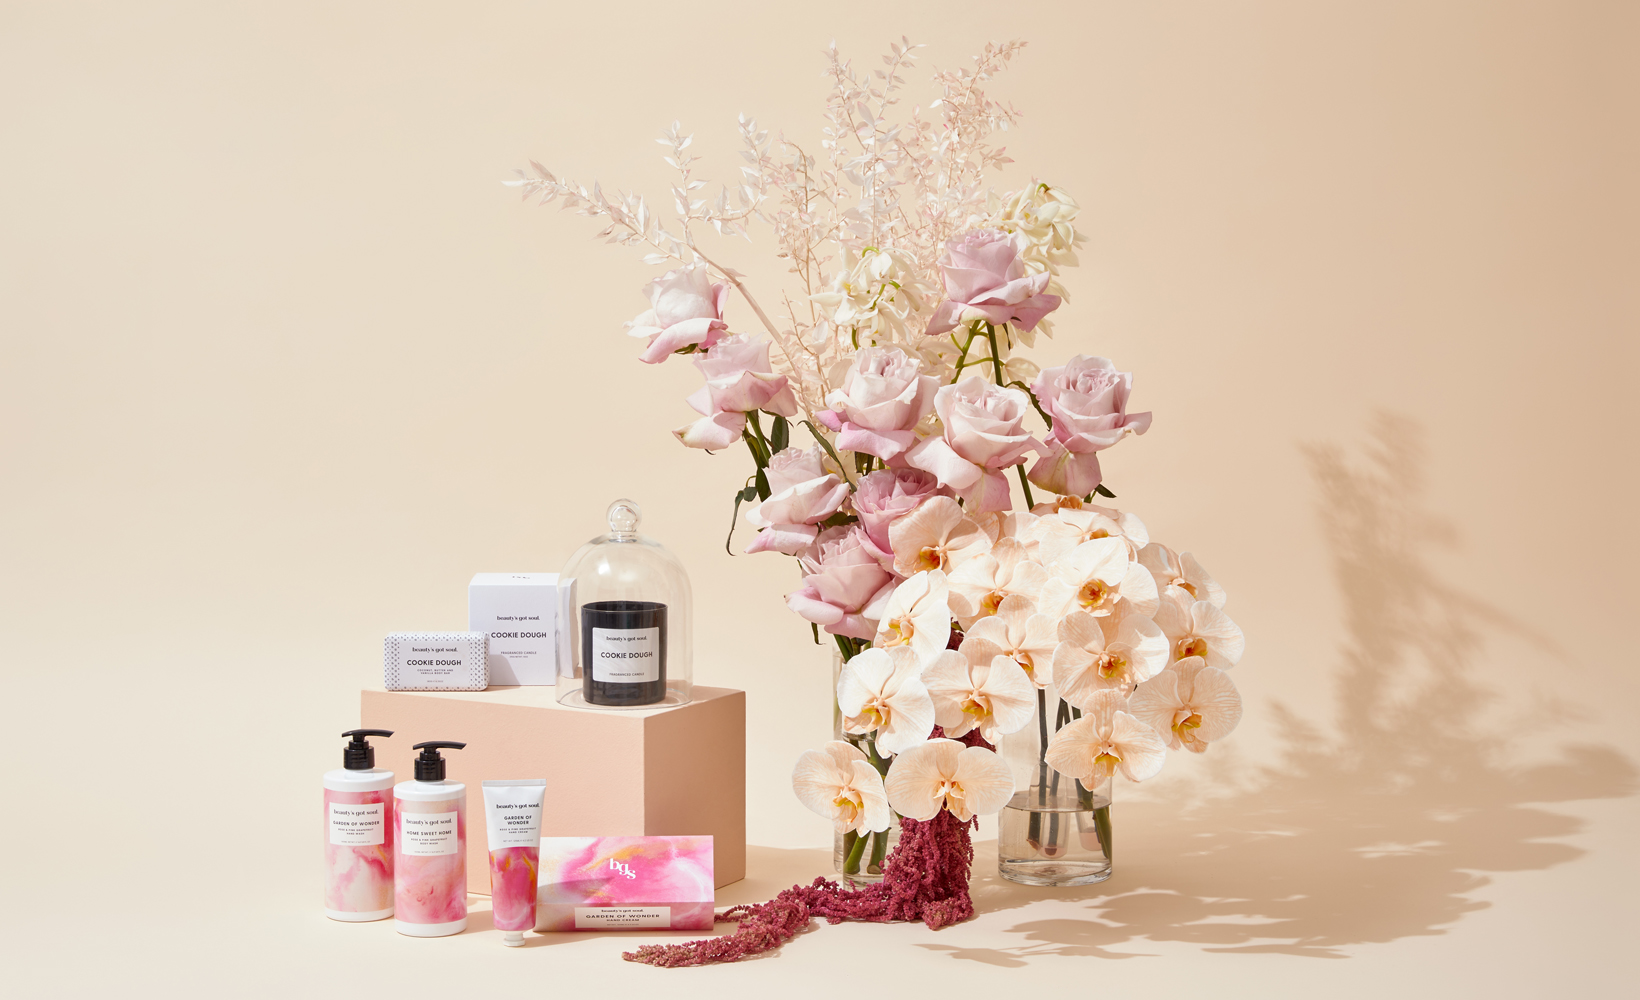 beauty's got soul unique gift hampers filled with candles, bath & body products